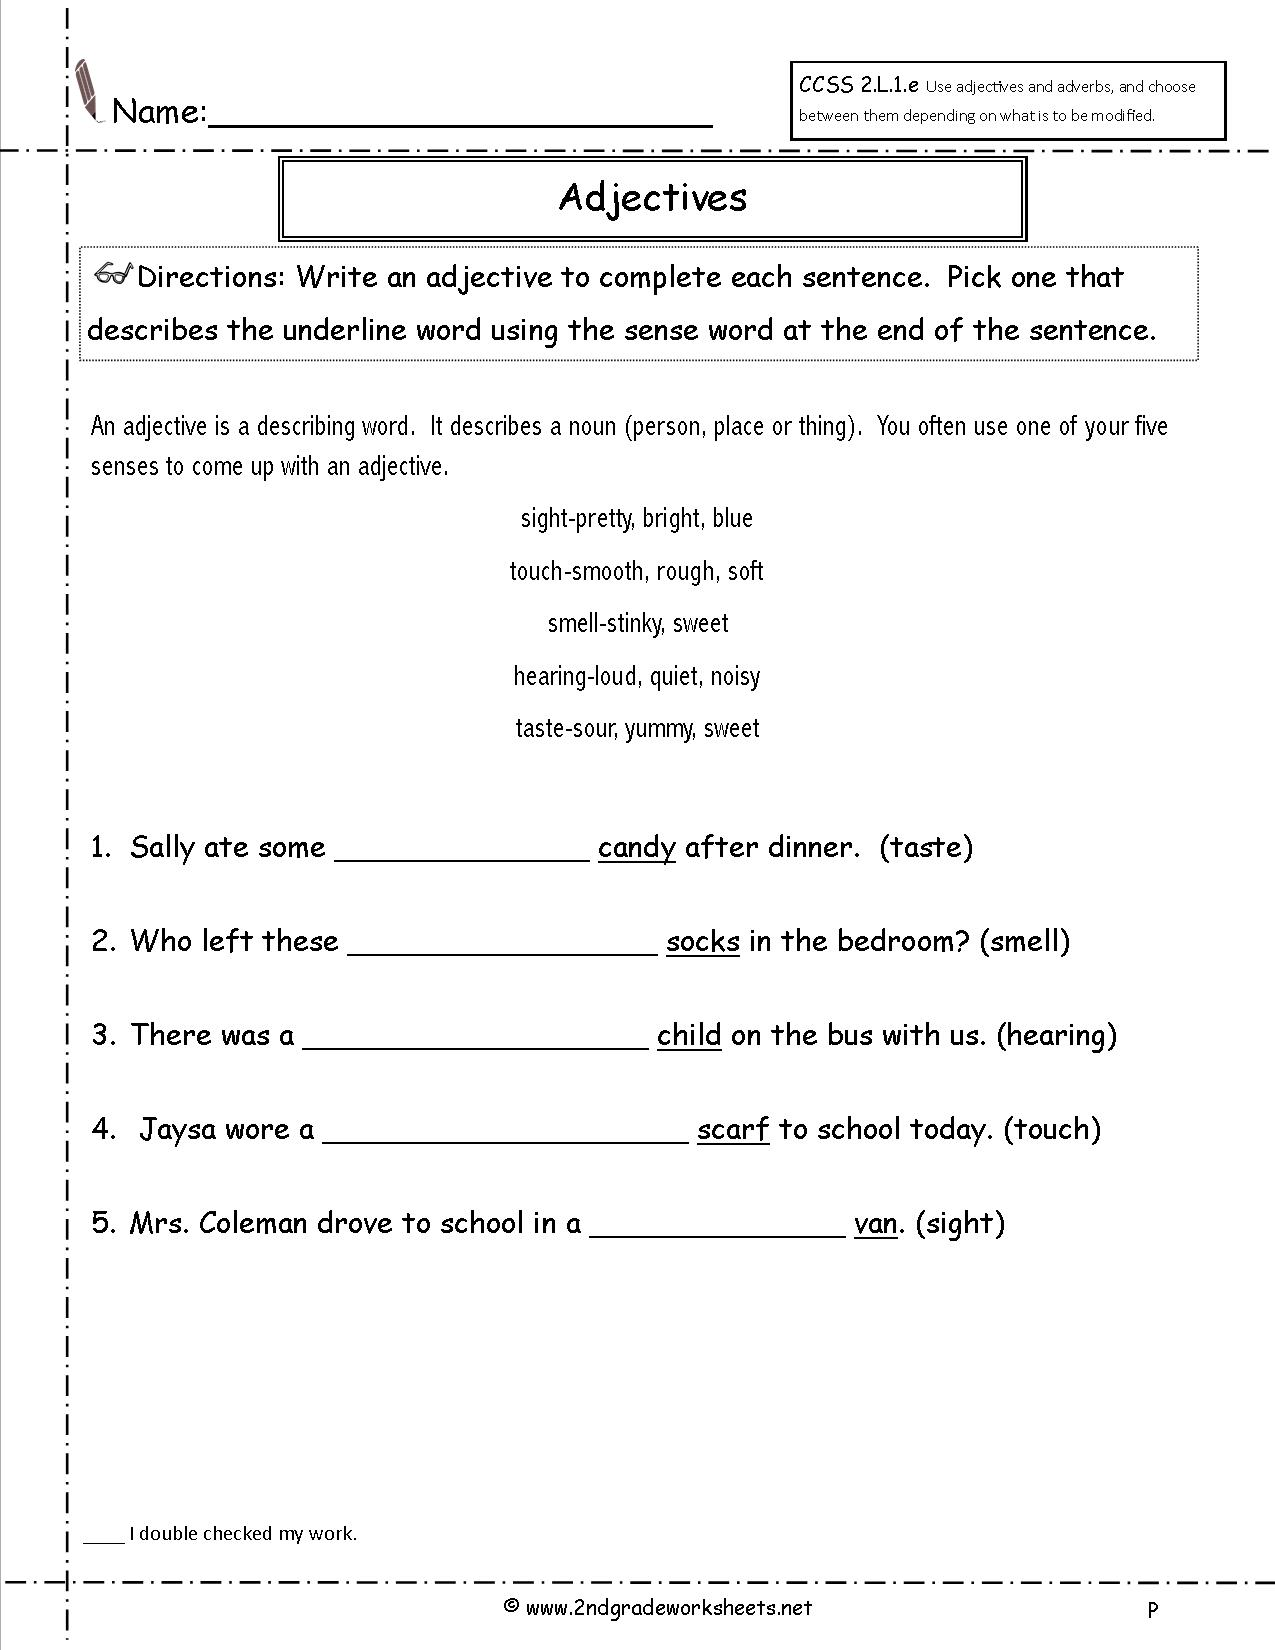 15 Best Images Of Adjective Worksheets For 5th Grade